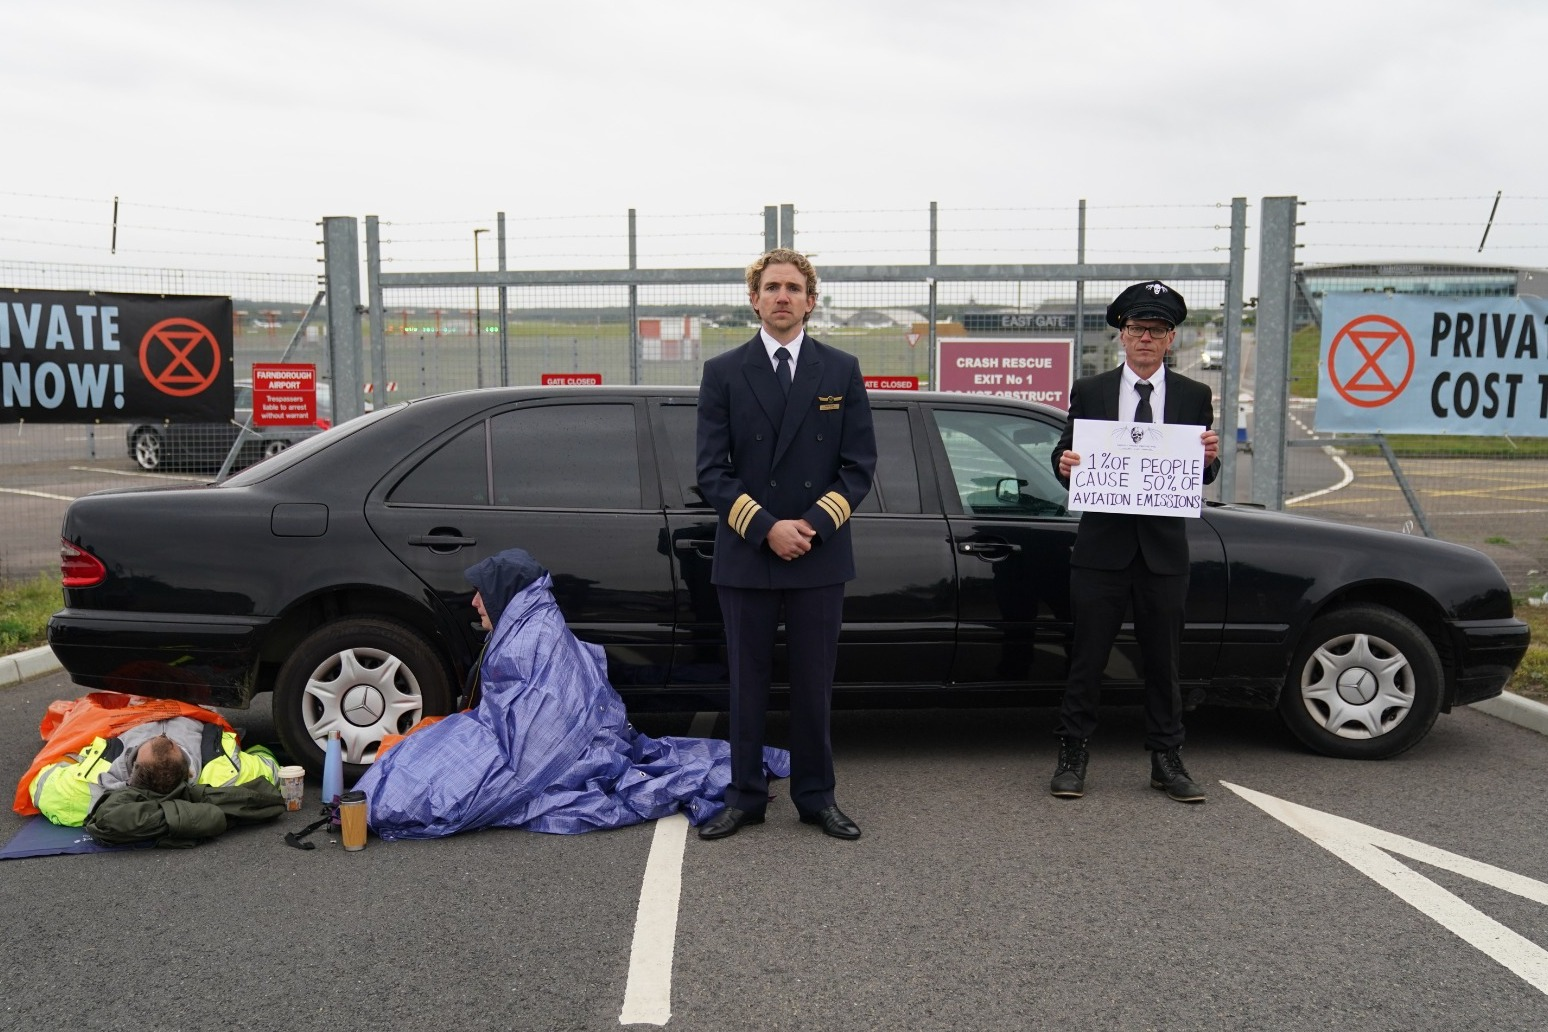 Climate activists stage protest at airport against private jet emissions